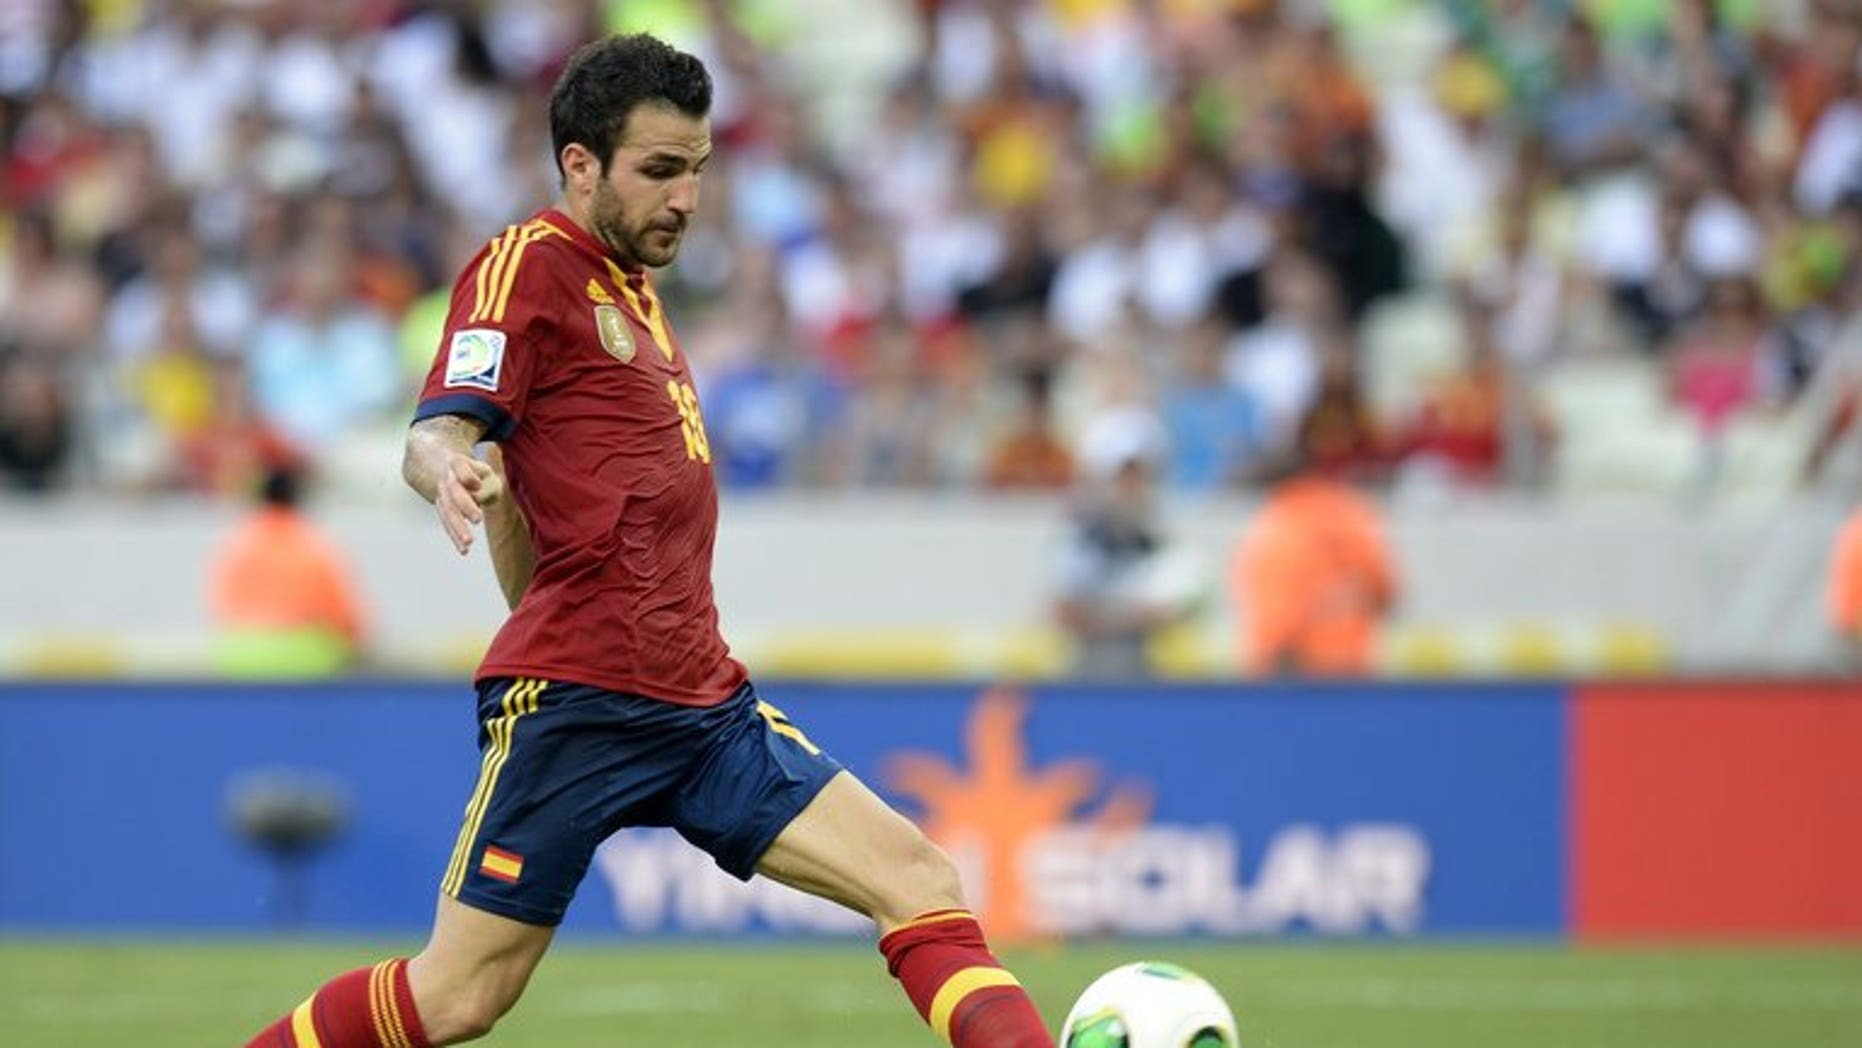 Spain's midfielder Cesc Fabregas drives the ball during a FIFA Confederations Cup Brazil 2013 match against Nigeria at the Castelao Stadium in Fortaleza on June 23, 2013. Manchester United have made a ??25 million ($37.7 million, 28.9-million-euros) offer for Fabregas, reports in the media suggested.